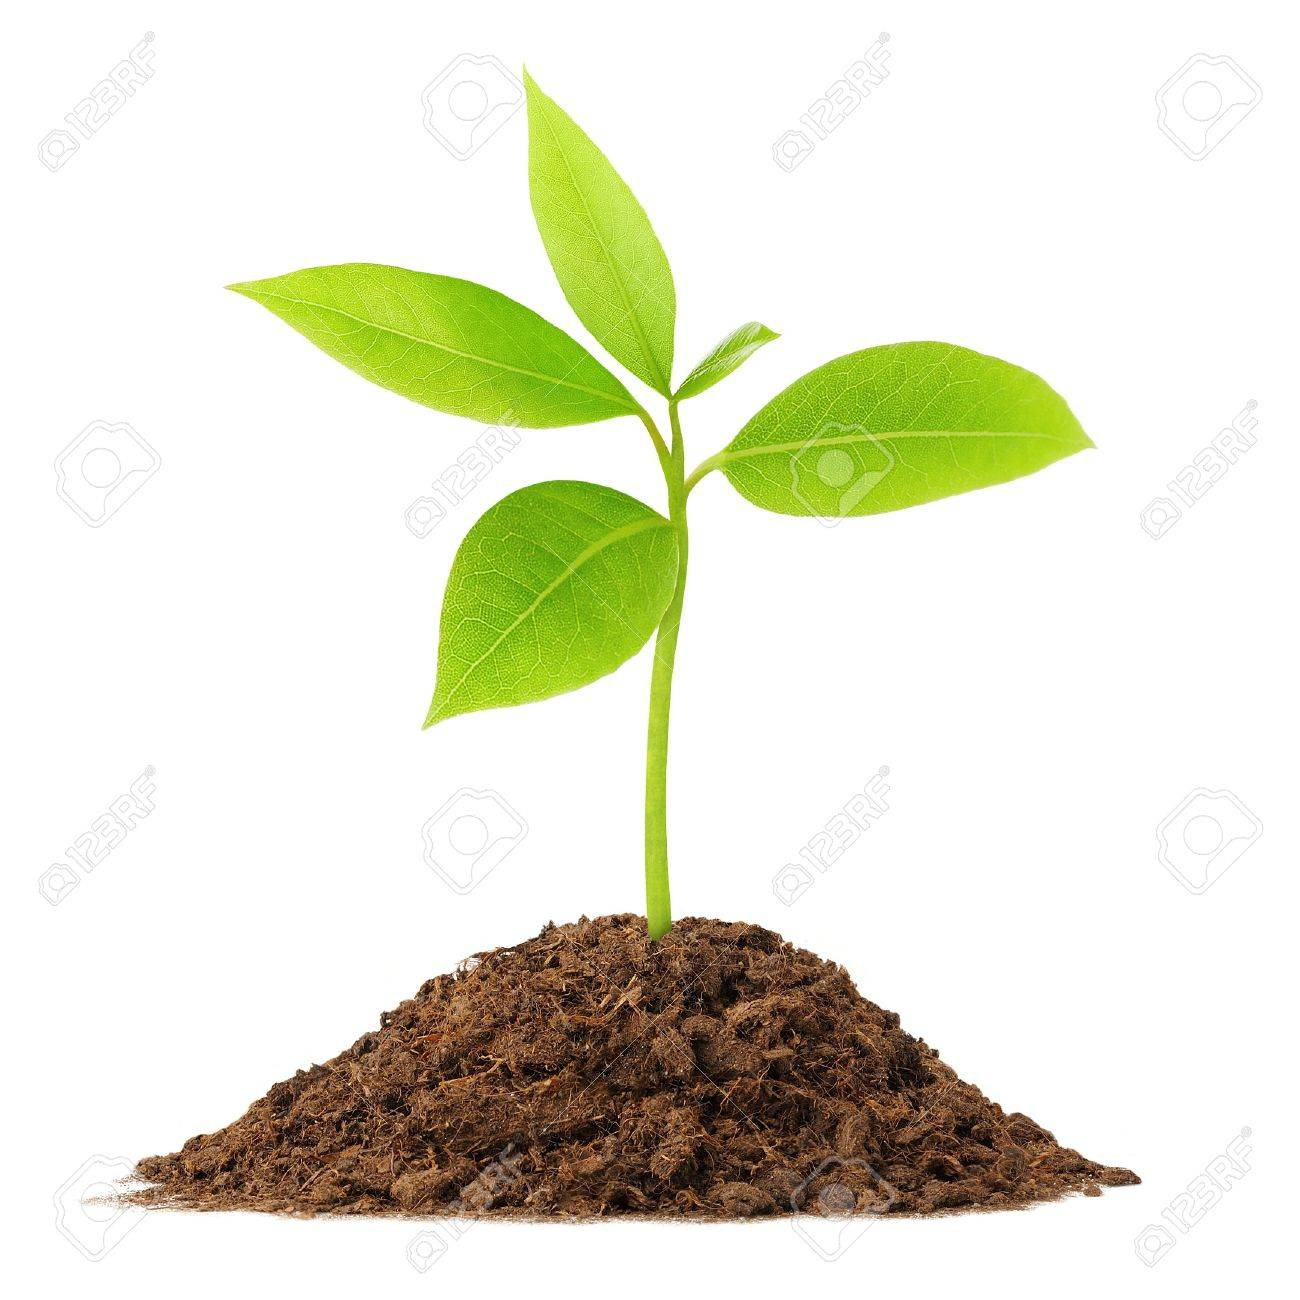 Young green plant growing from soil - 7215563